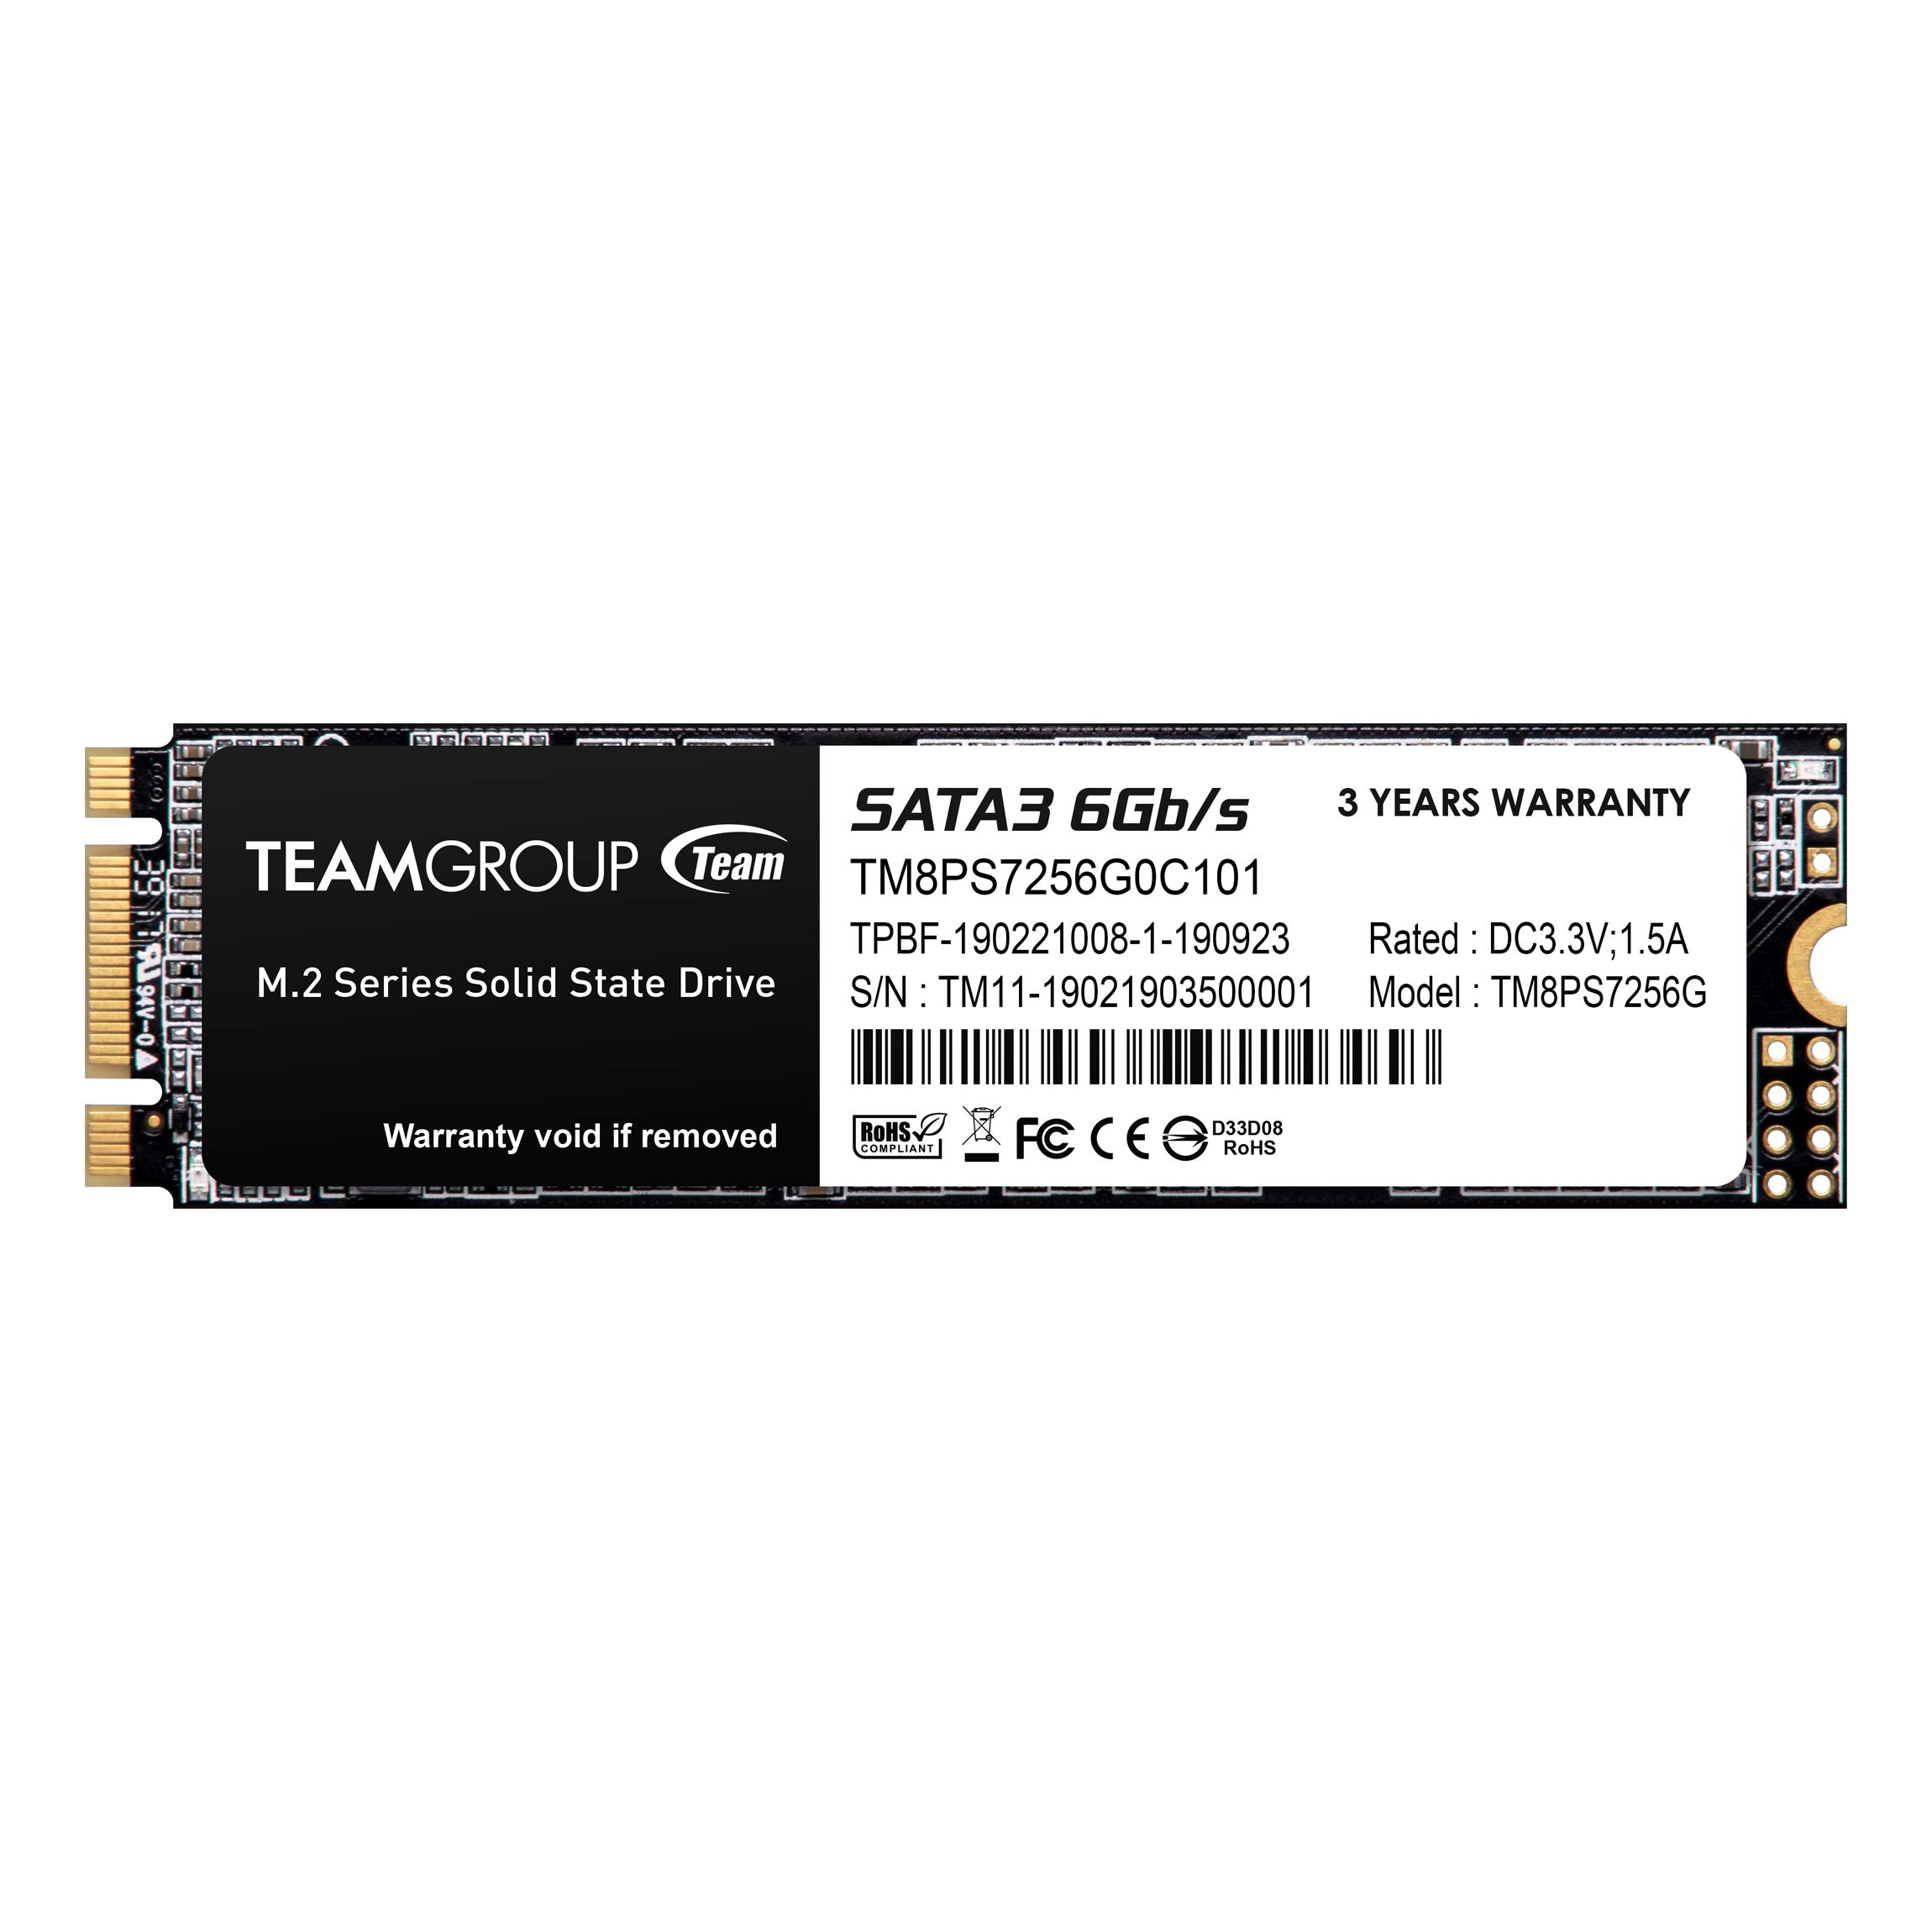 TEAMGROUP MS30 256GB SATA Rev. 3.0 (6Gb/s) M.2 Solid State Drive SSD (Read/Write Speed up to 550/470 MB/s)